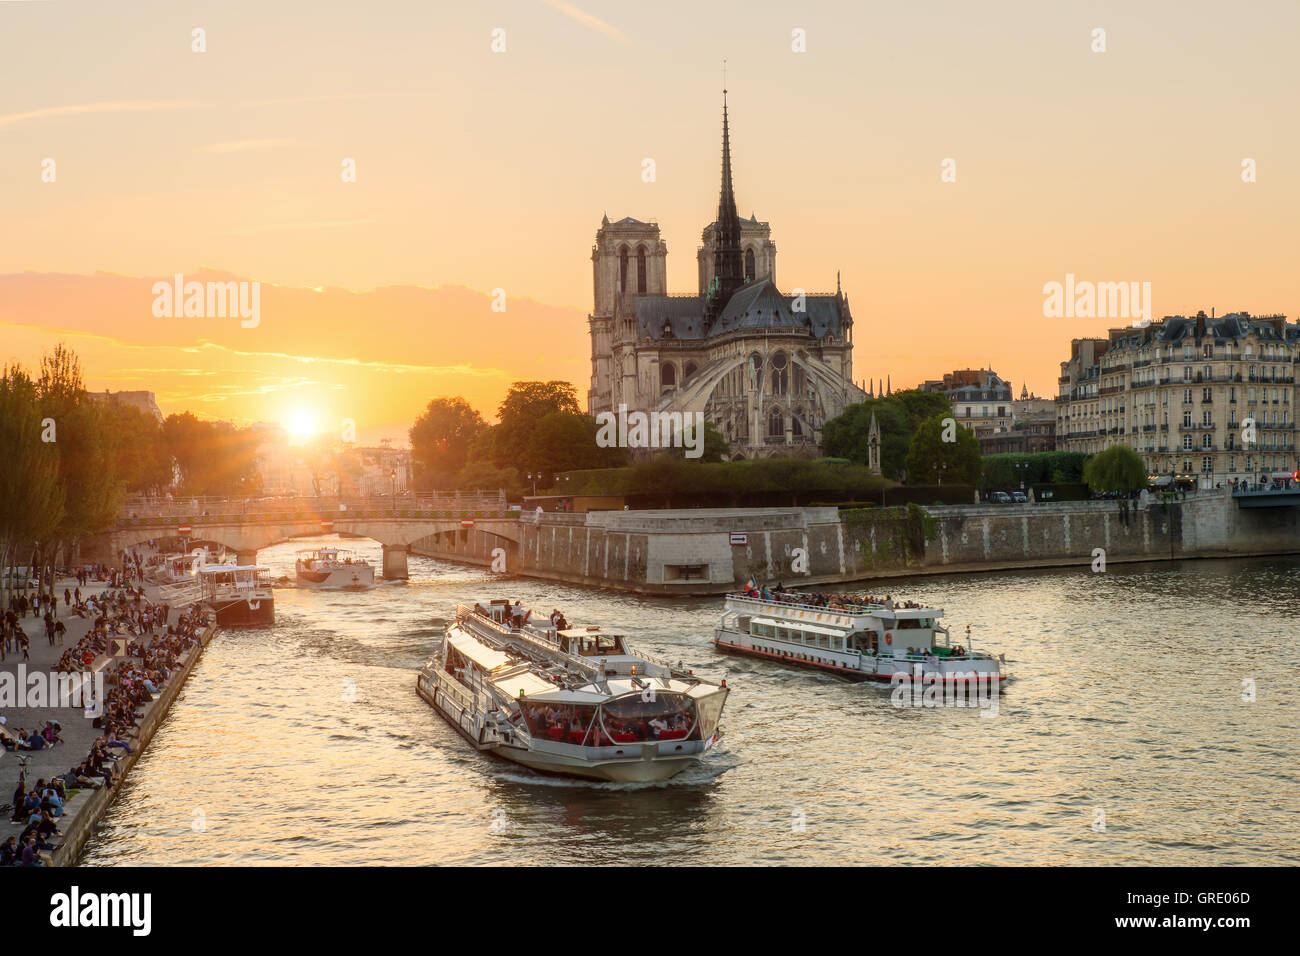 Notre Dame de Paris cathedral with cruise ship in Seine river in Paris, France. Beautiful sunset in Paris, France - Stock Image